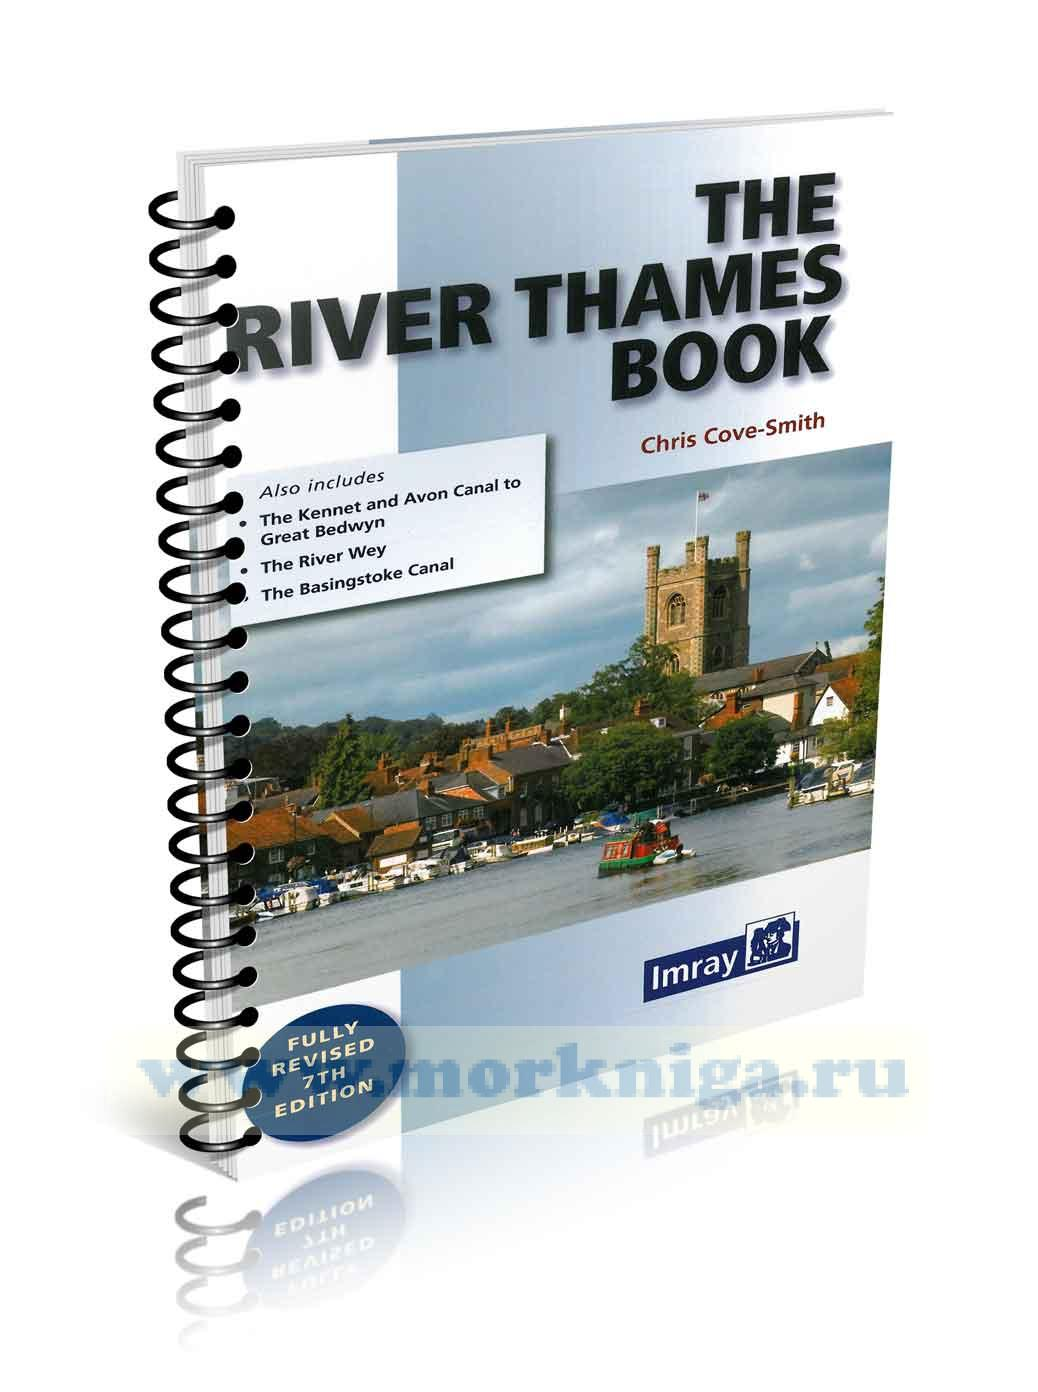 The River Thames Book 7th edition Книга о реке Темзе. Руководство для судоводителей